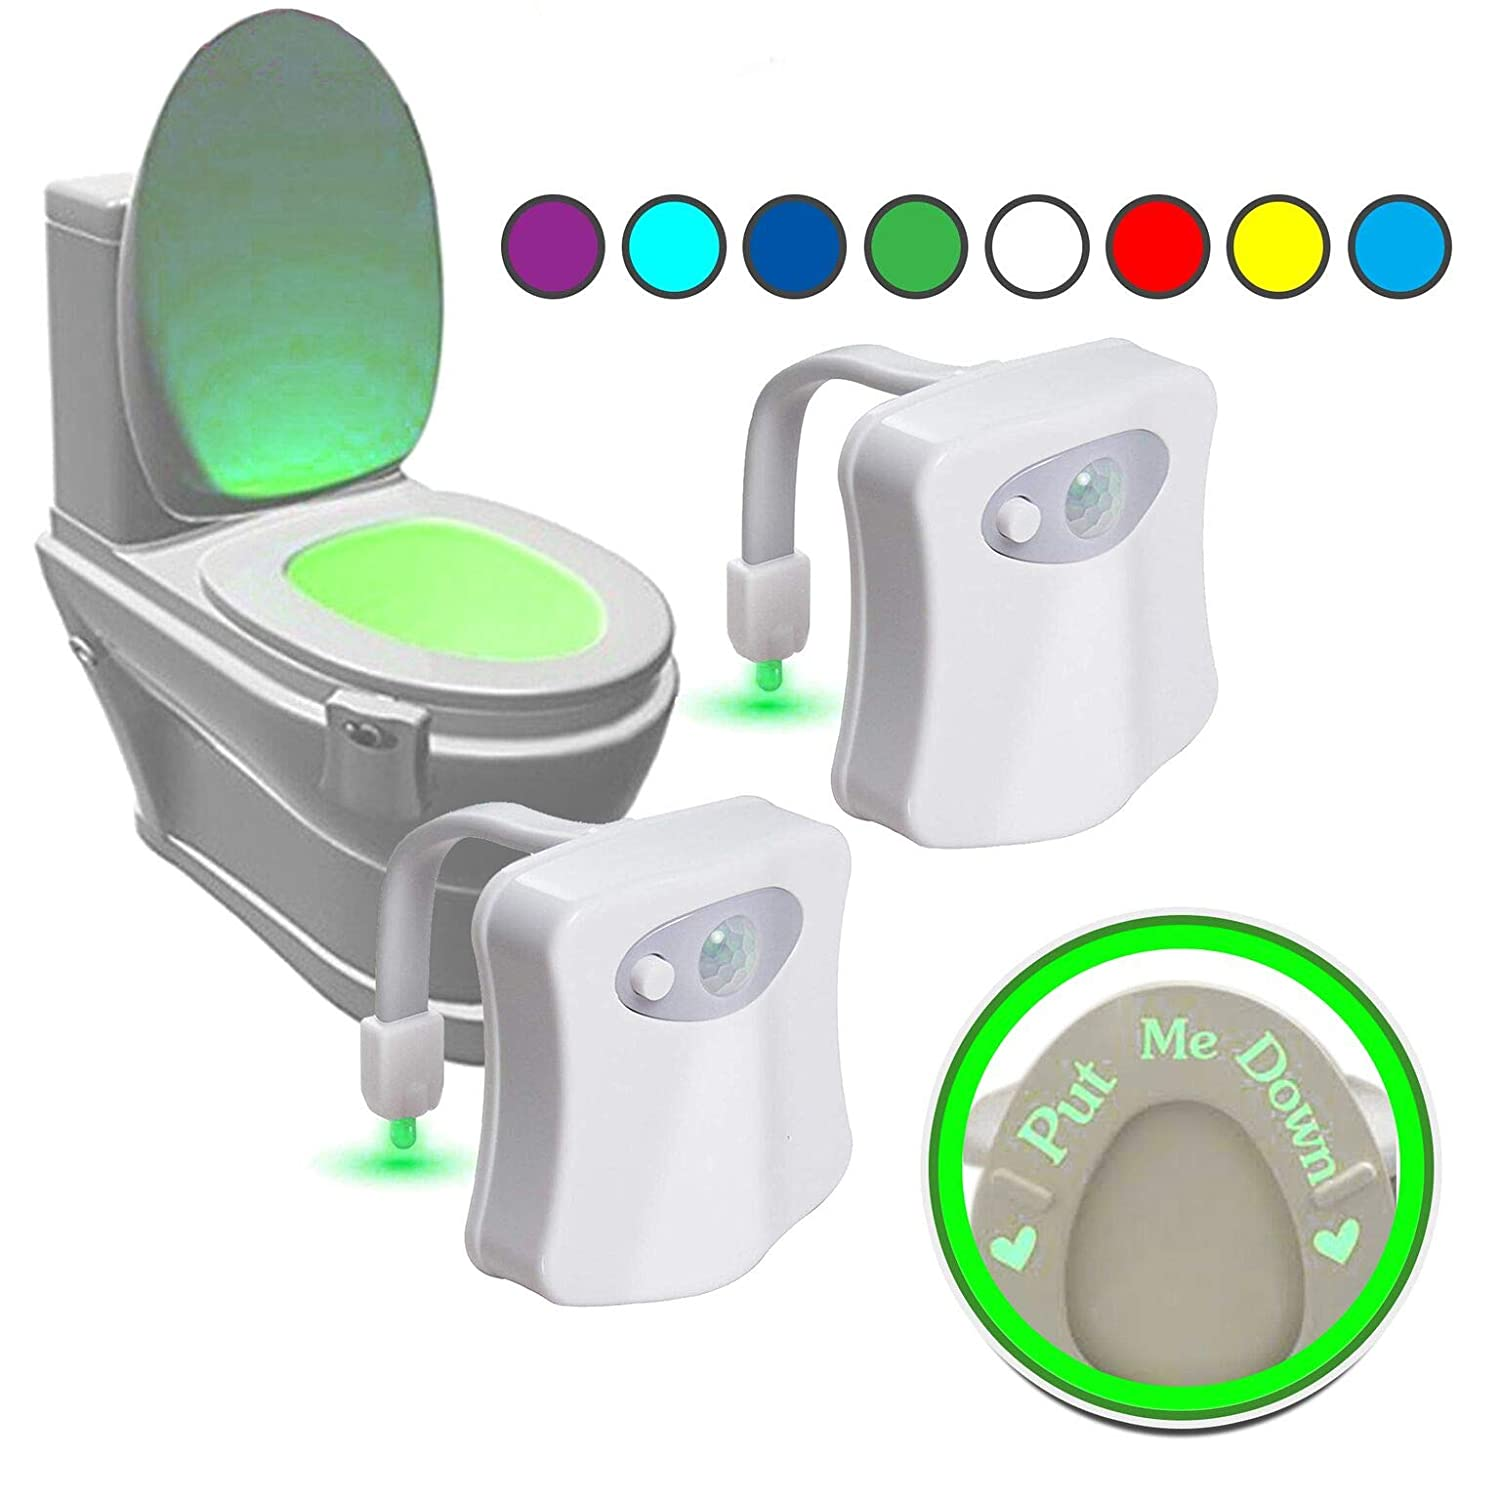 2 Pack Toilet Light with'Put me Down' Sticker That Glows in The Dark. The Original Light Bowl, 8 Colors in 1 Device Motion Activated Night Light. Great Tool to Potty Train Toddlers SAIF-LIFE